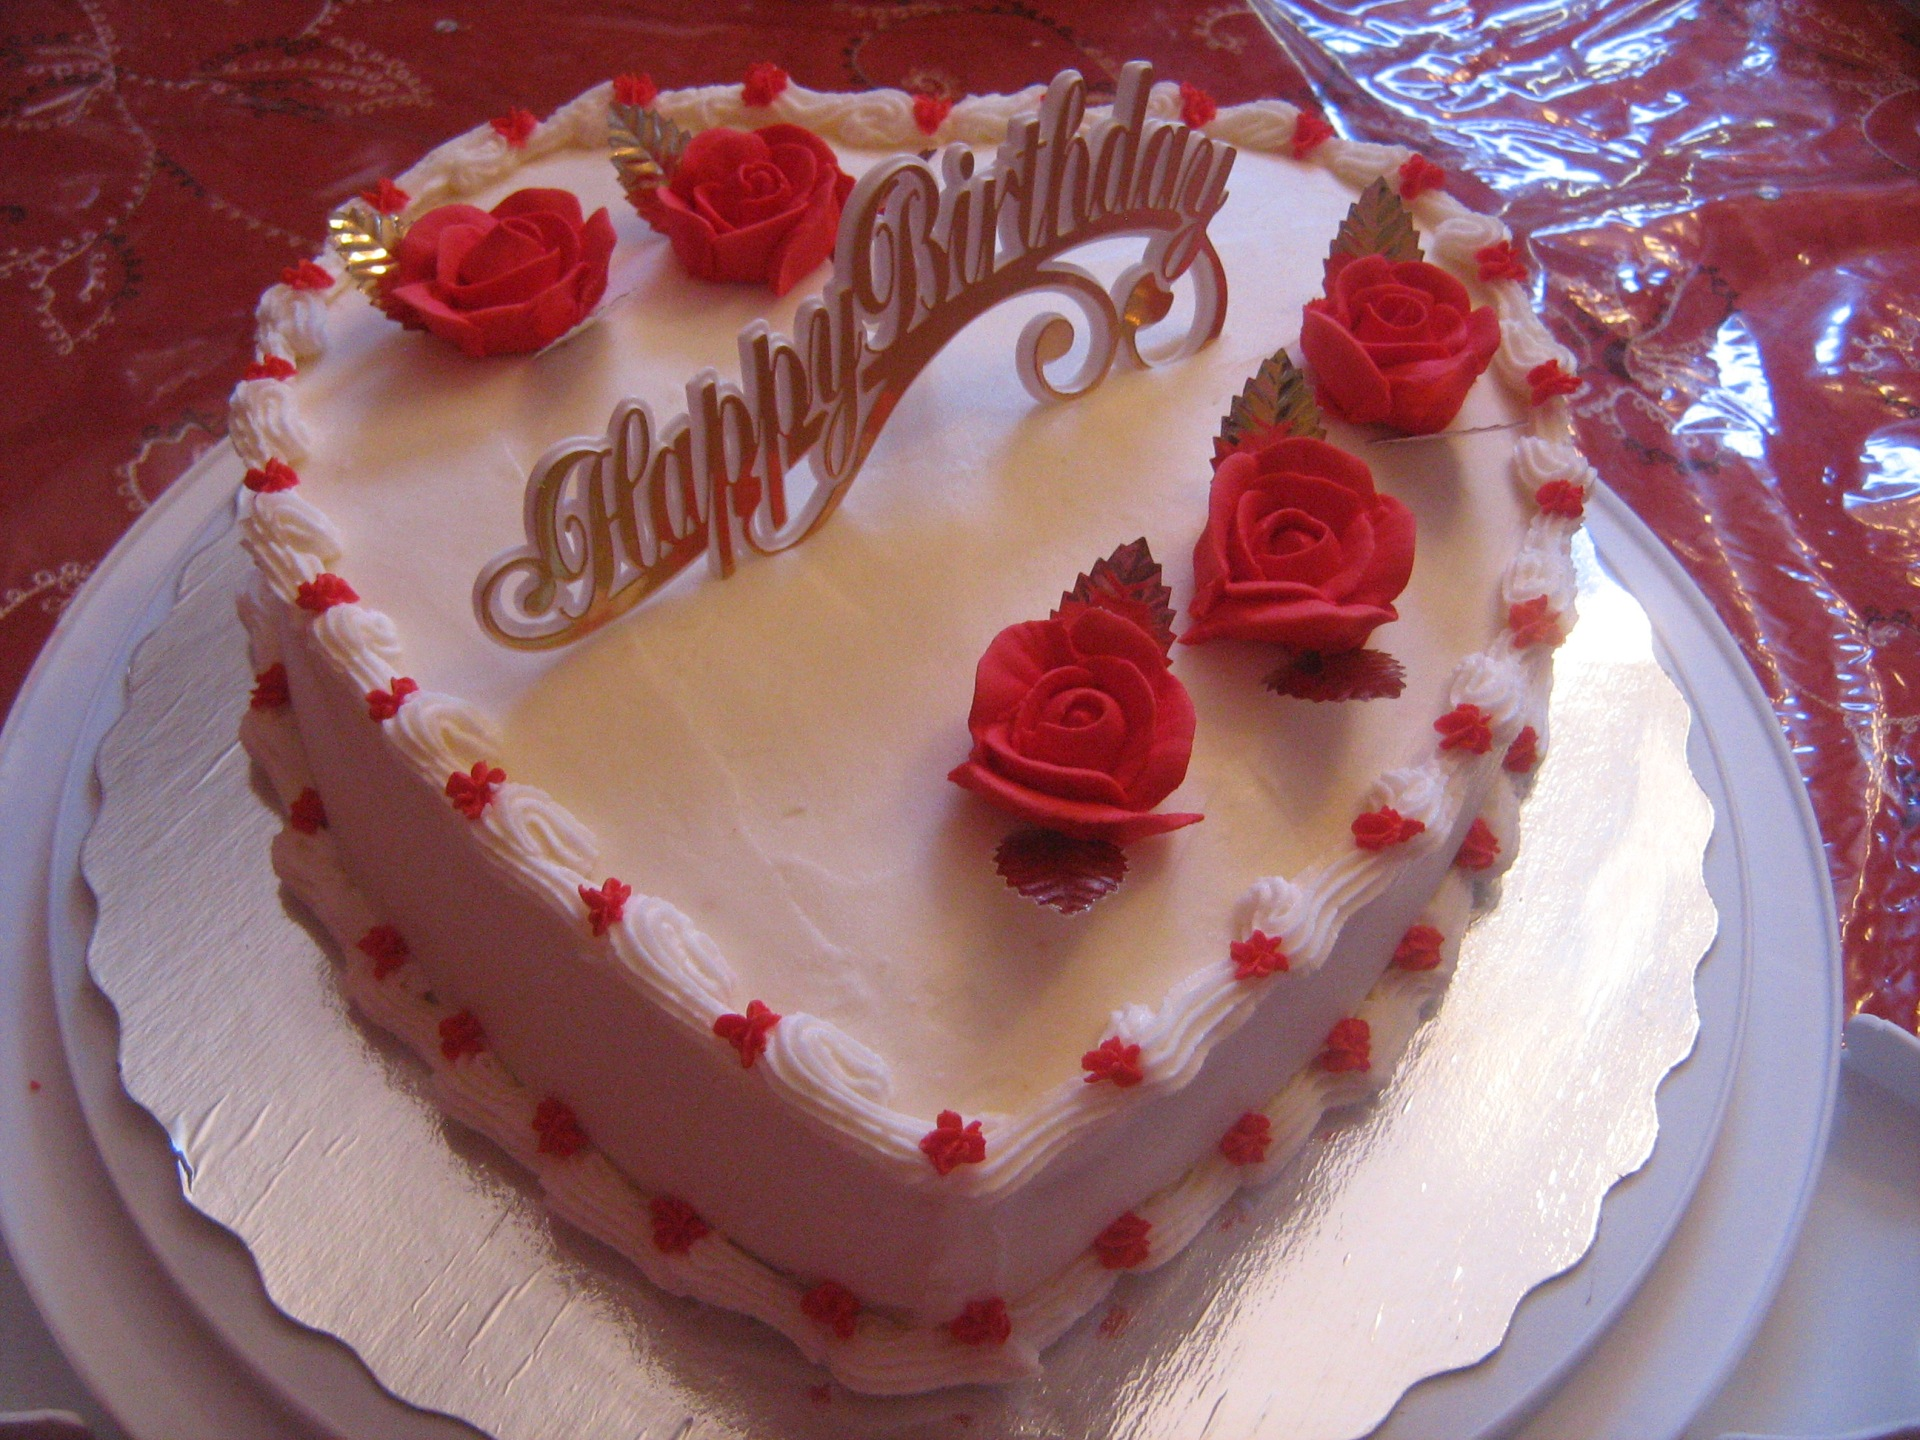 Birthday Cake Designs Love : Pin Love 3 Cake on Pinterest